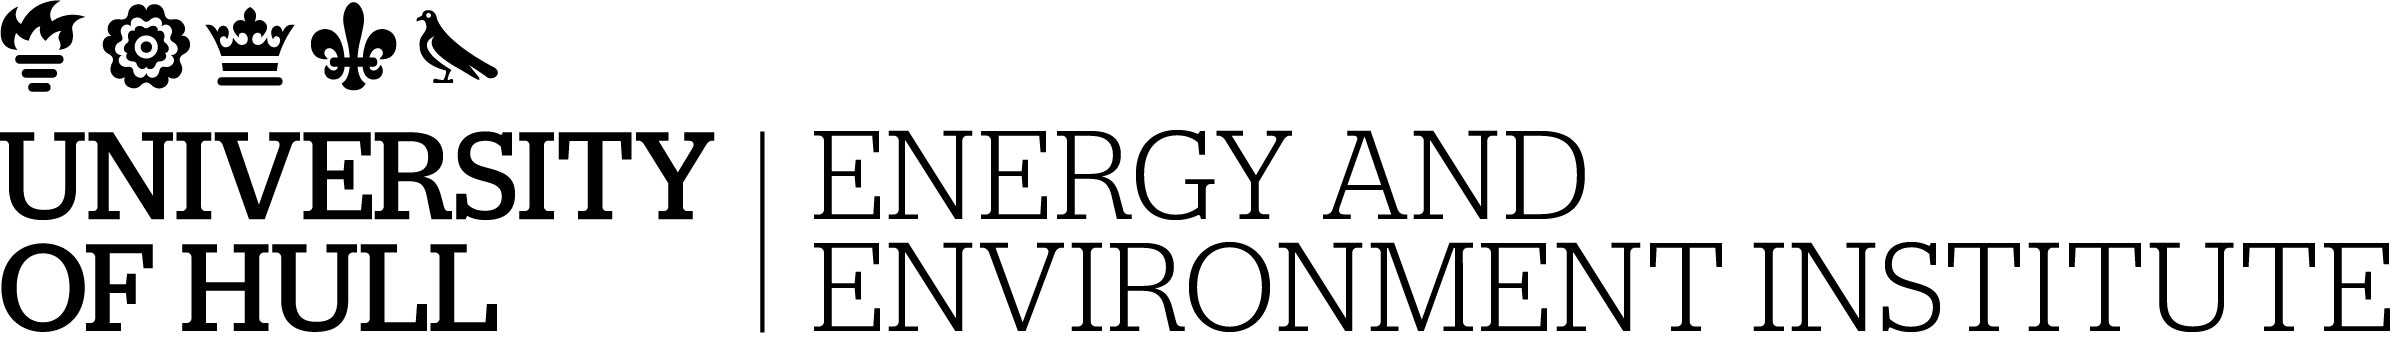 UoH_ENERGY%20AND%20ENVIORNMENT%20INSTITUTE_BLACK.jpg